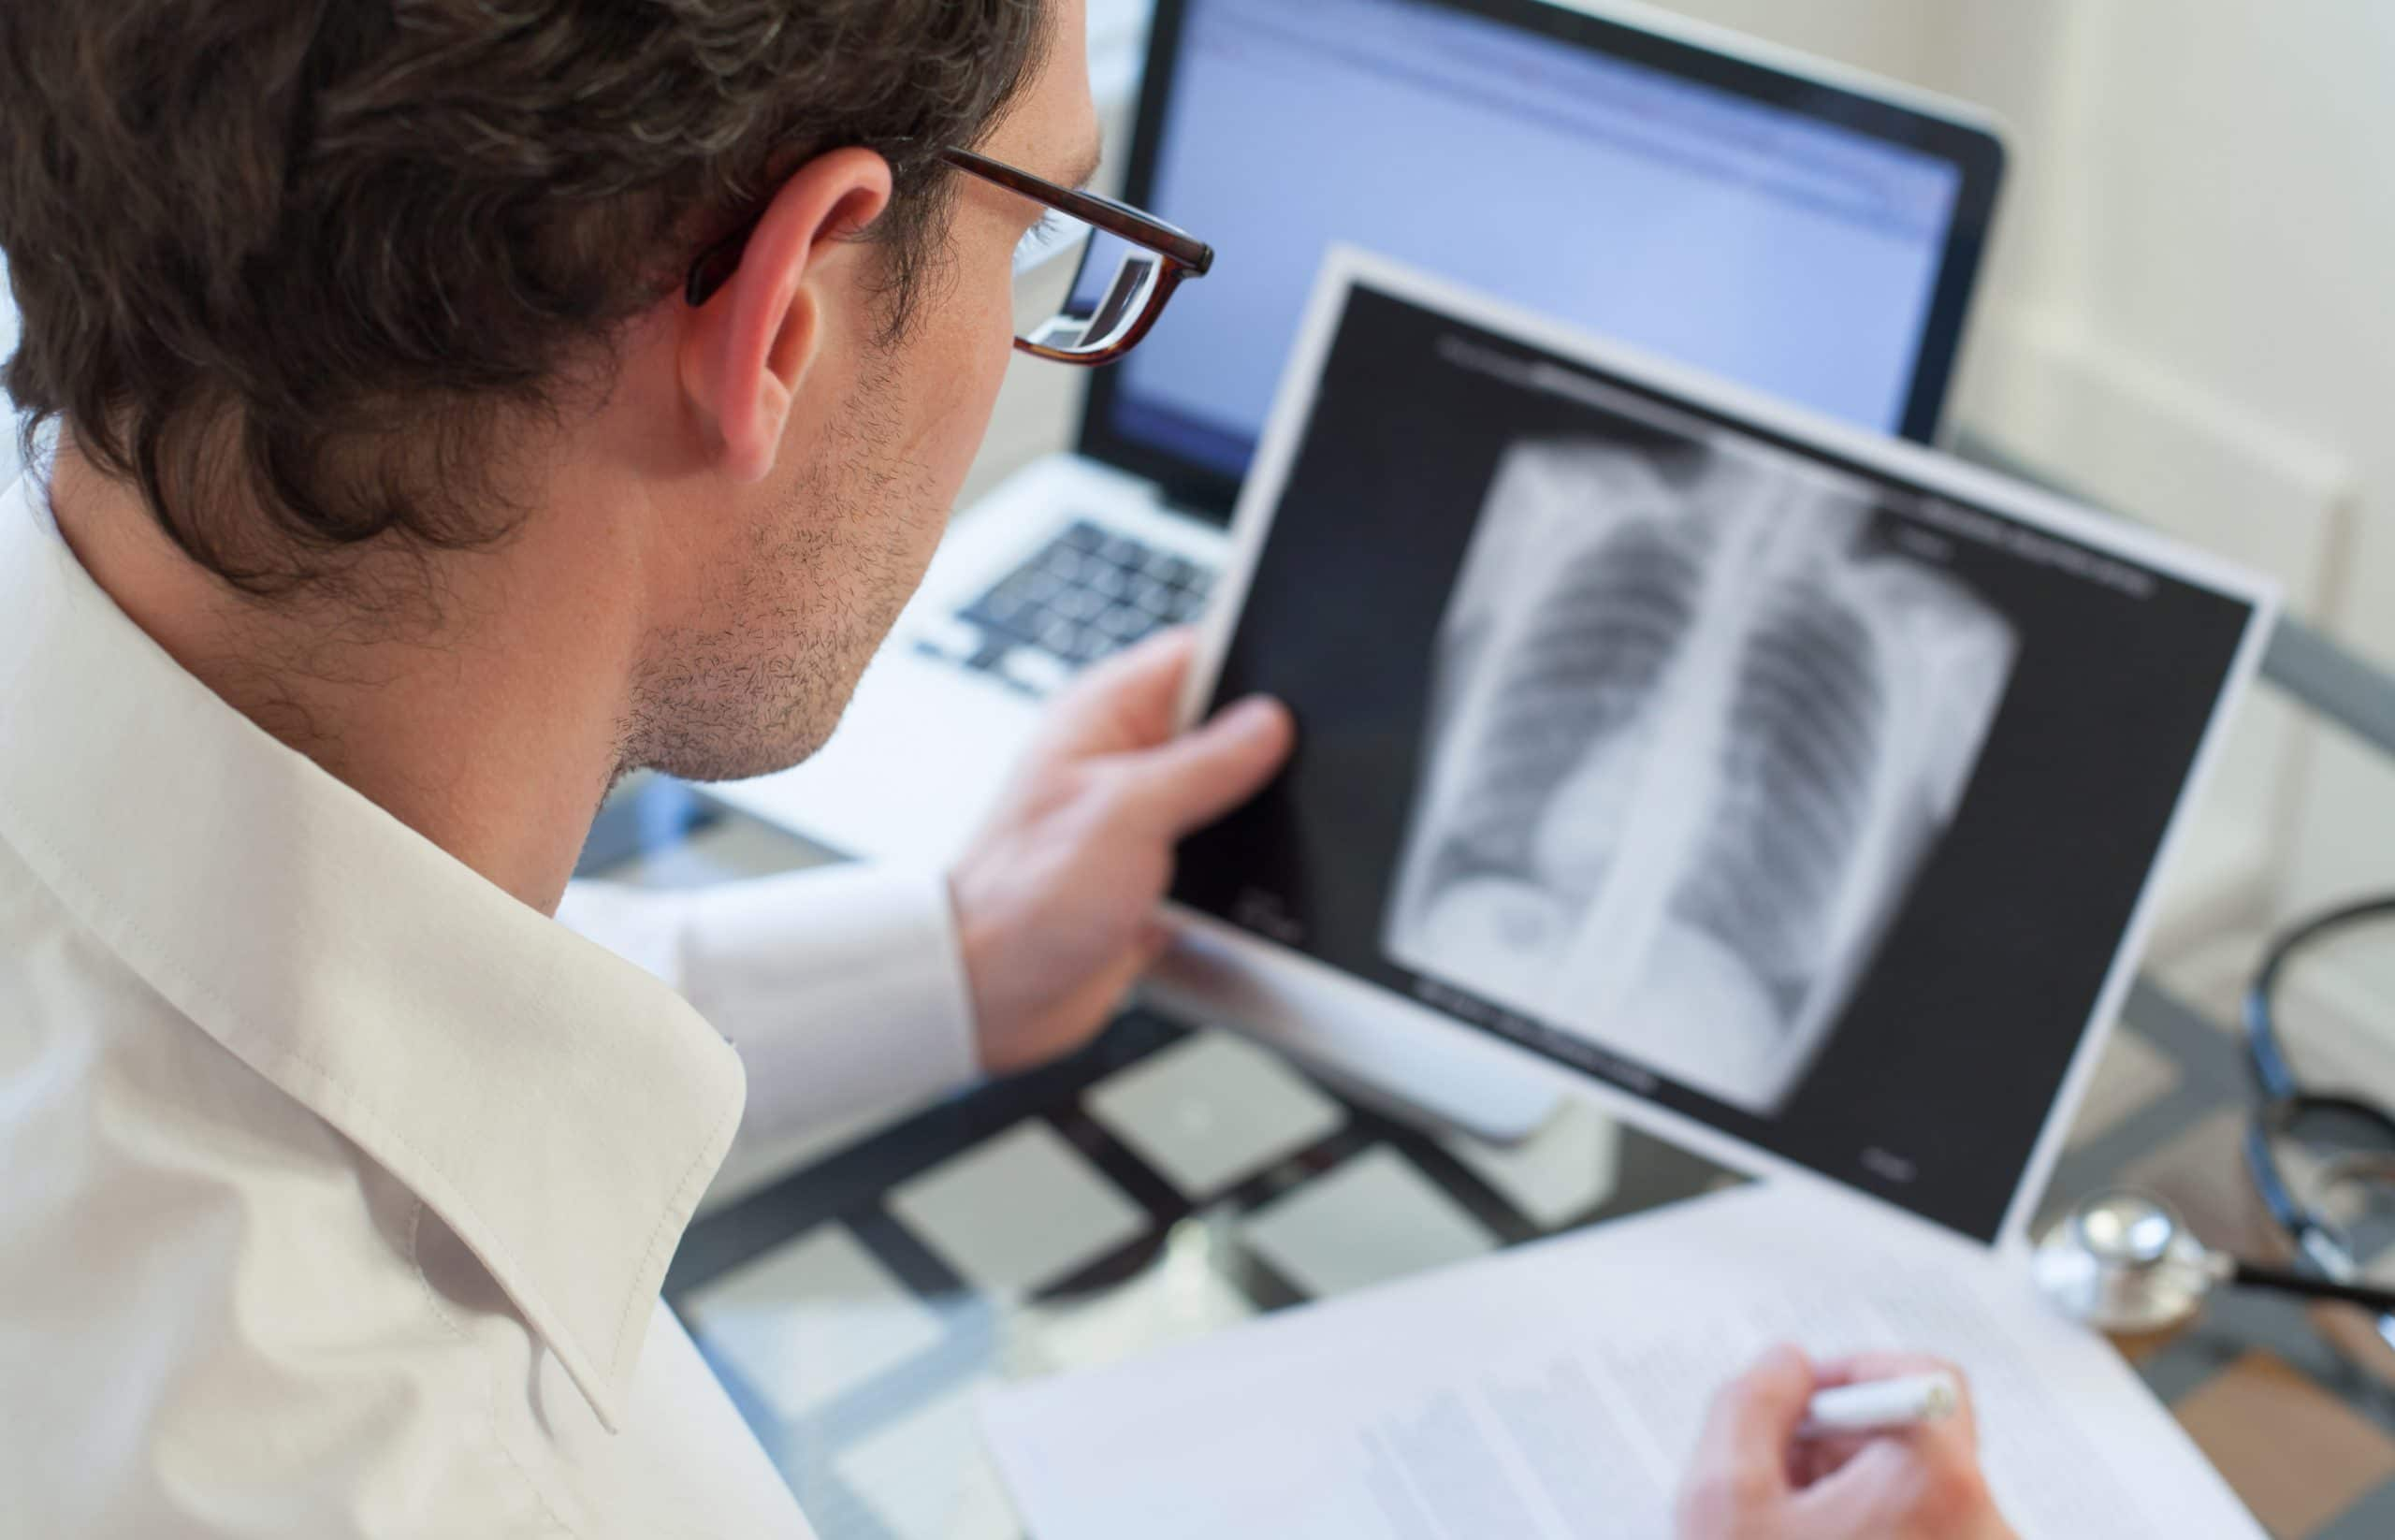 This is an image of a doctor looking over a patients Small Cell Lung Cancer results.